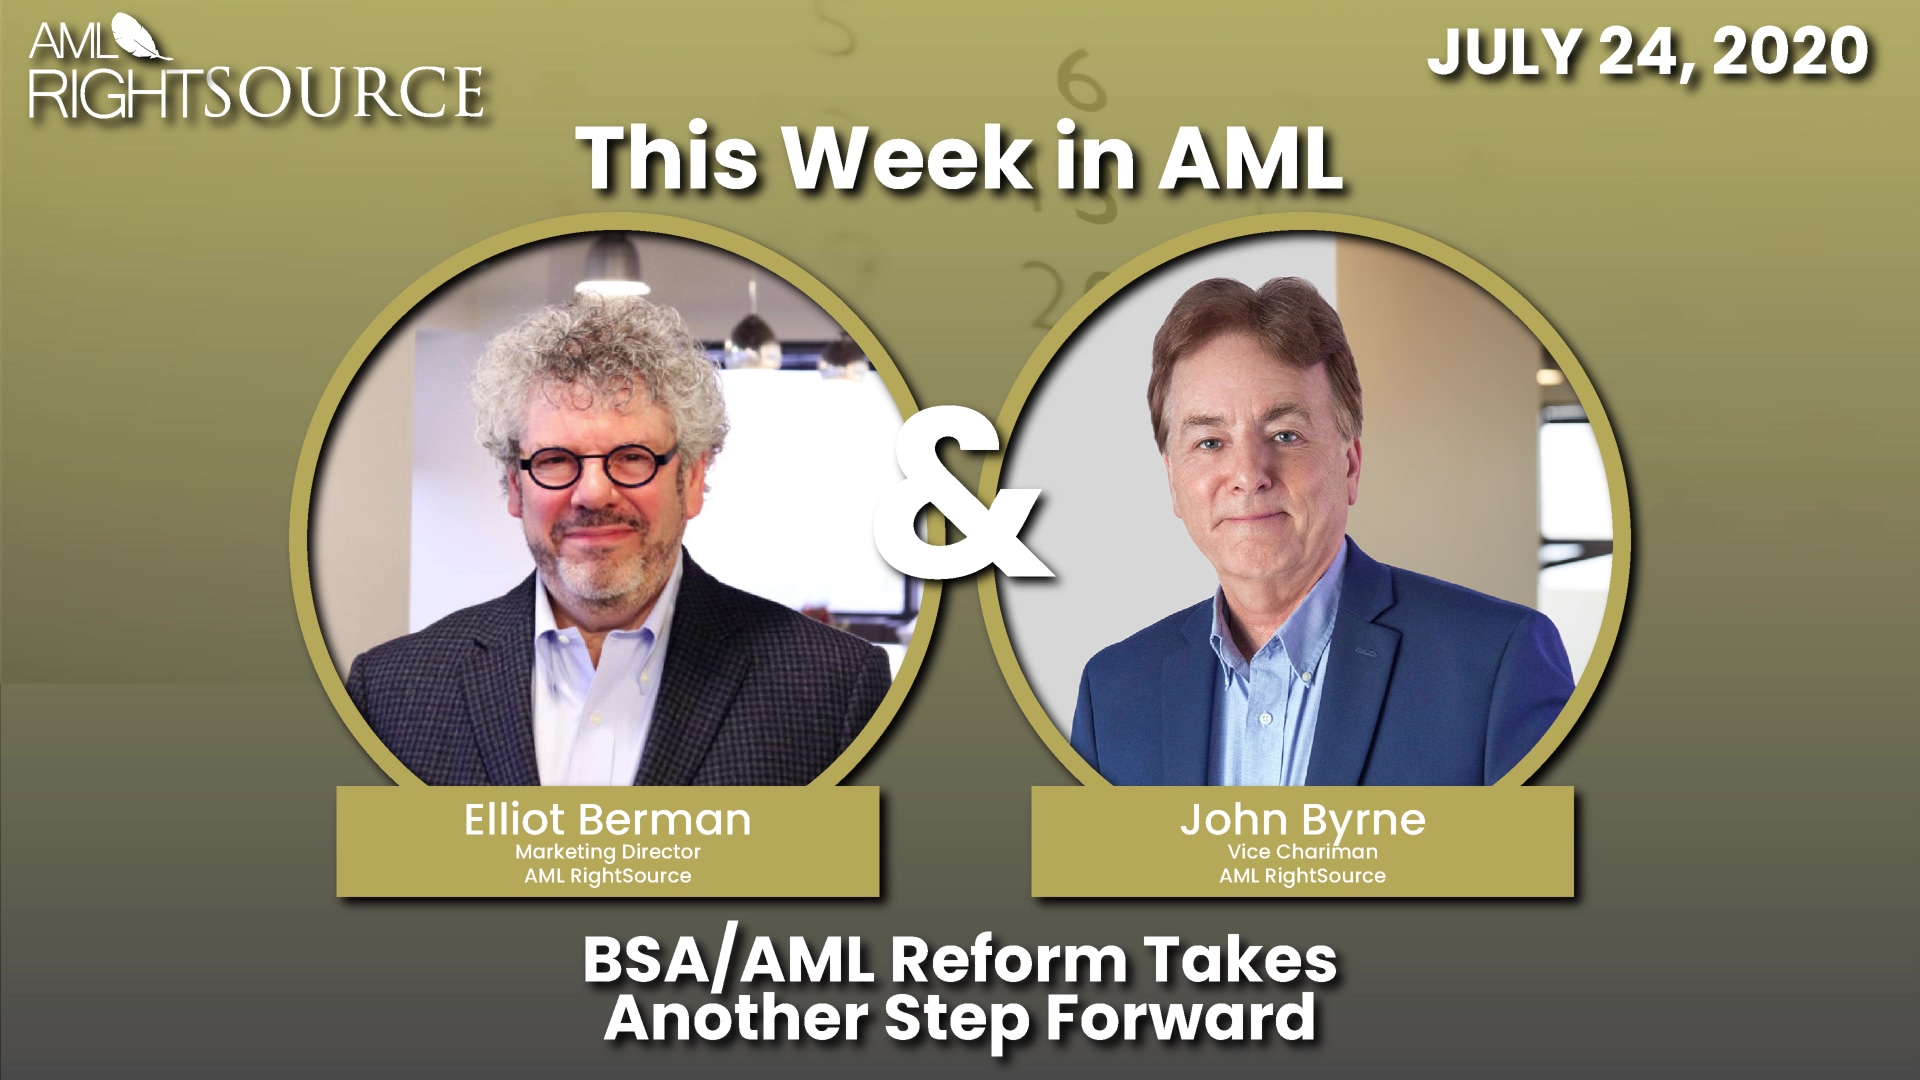 BSA_AML reform takes another step forward